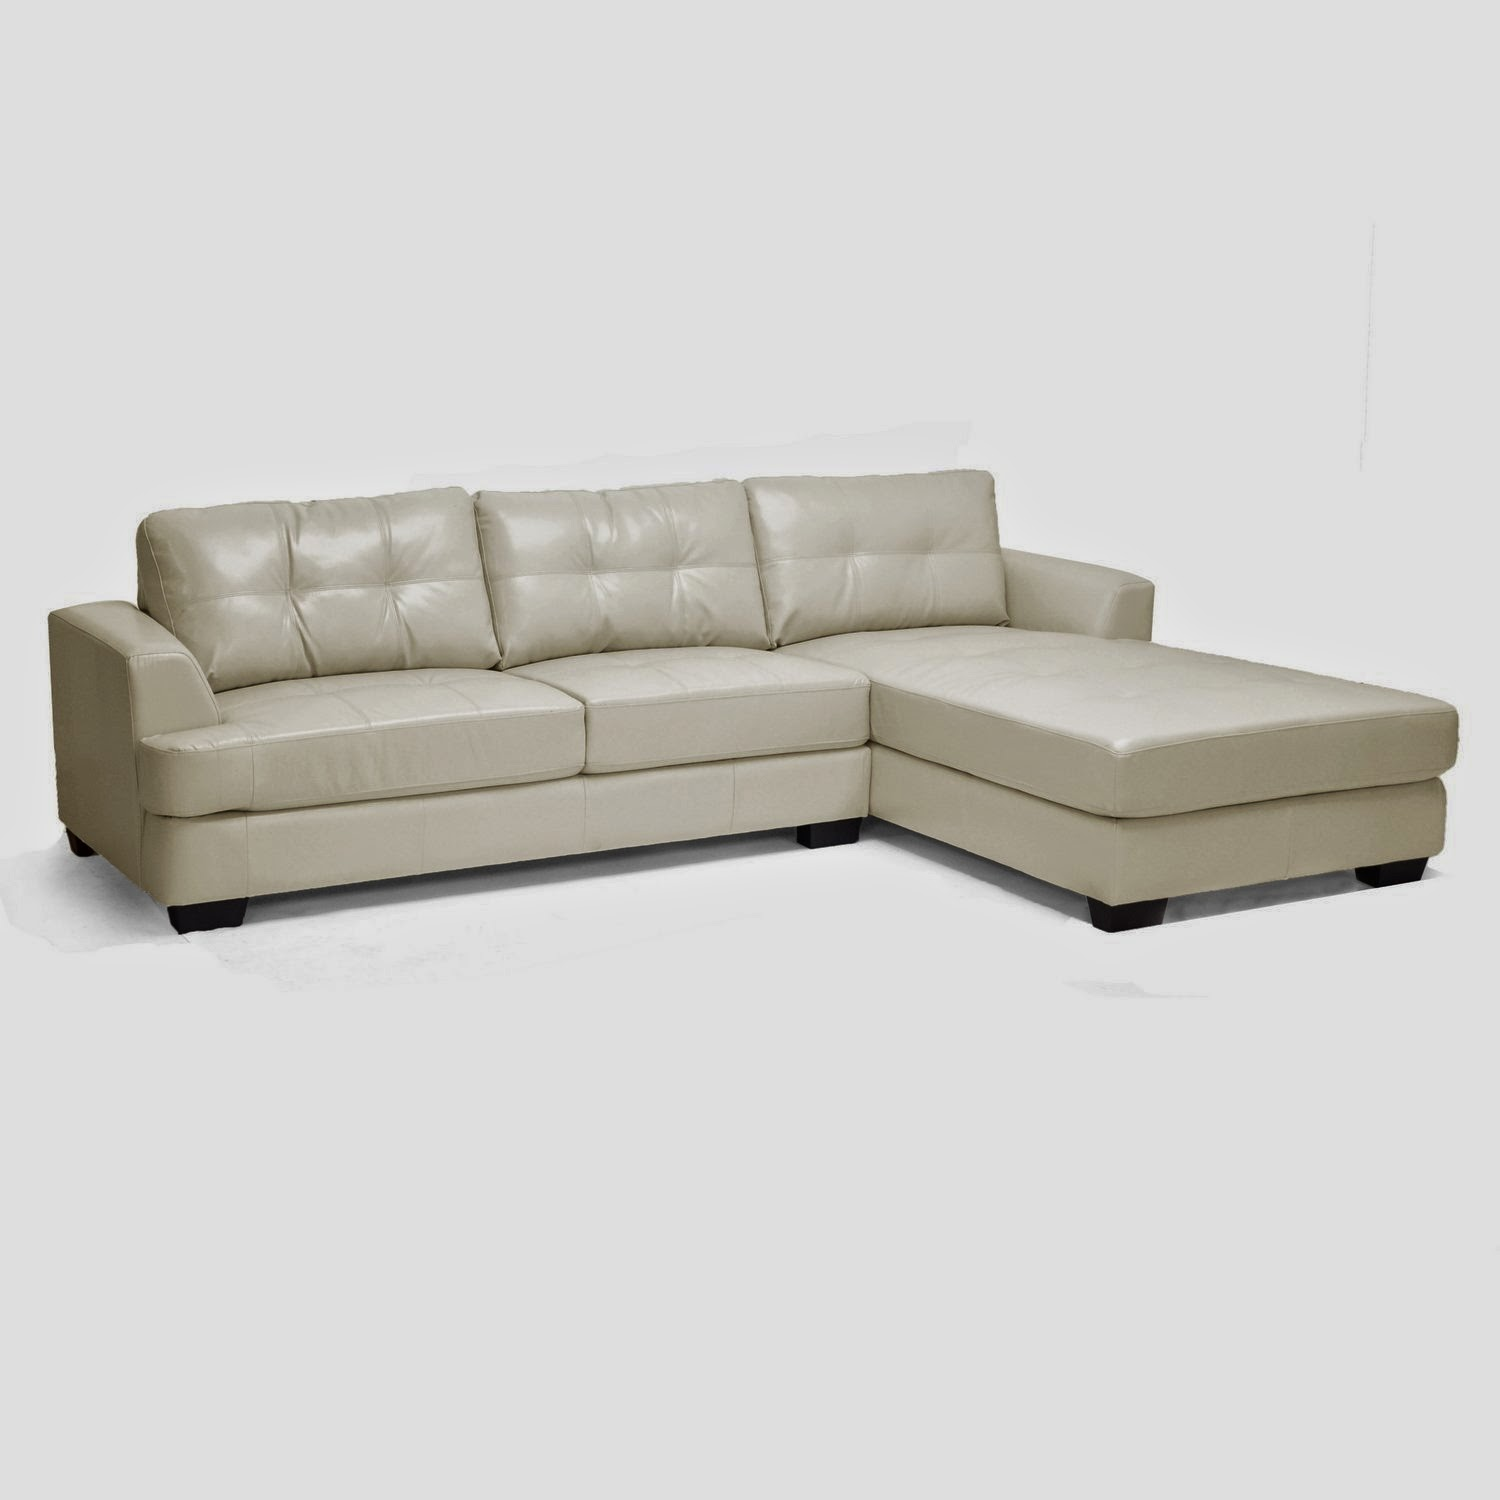 Couch with chaise leather couch with chaise lounge for Couch with 2 chaises